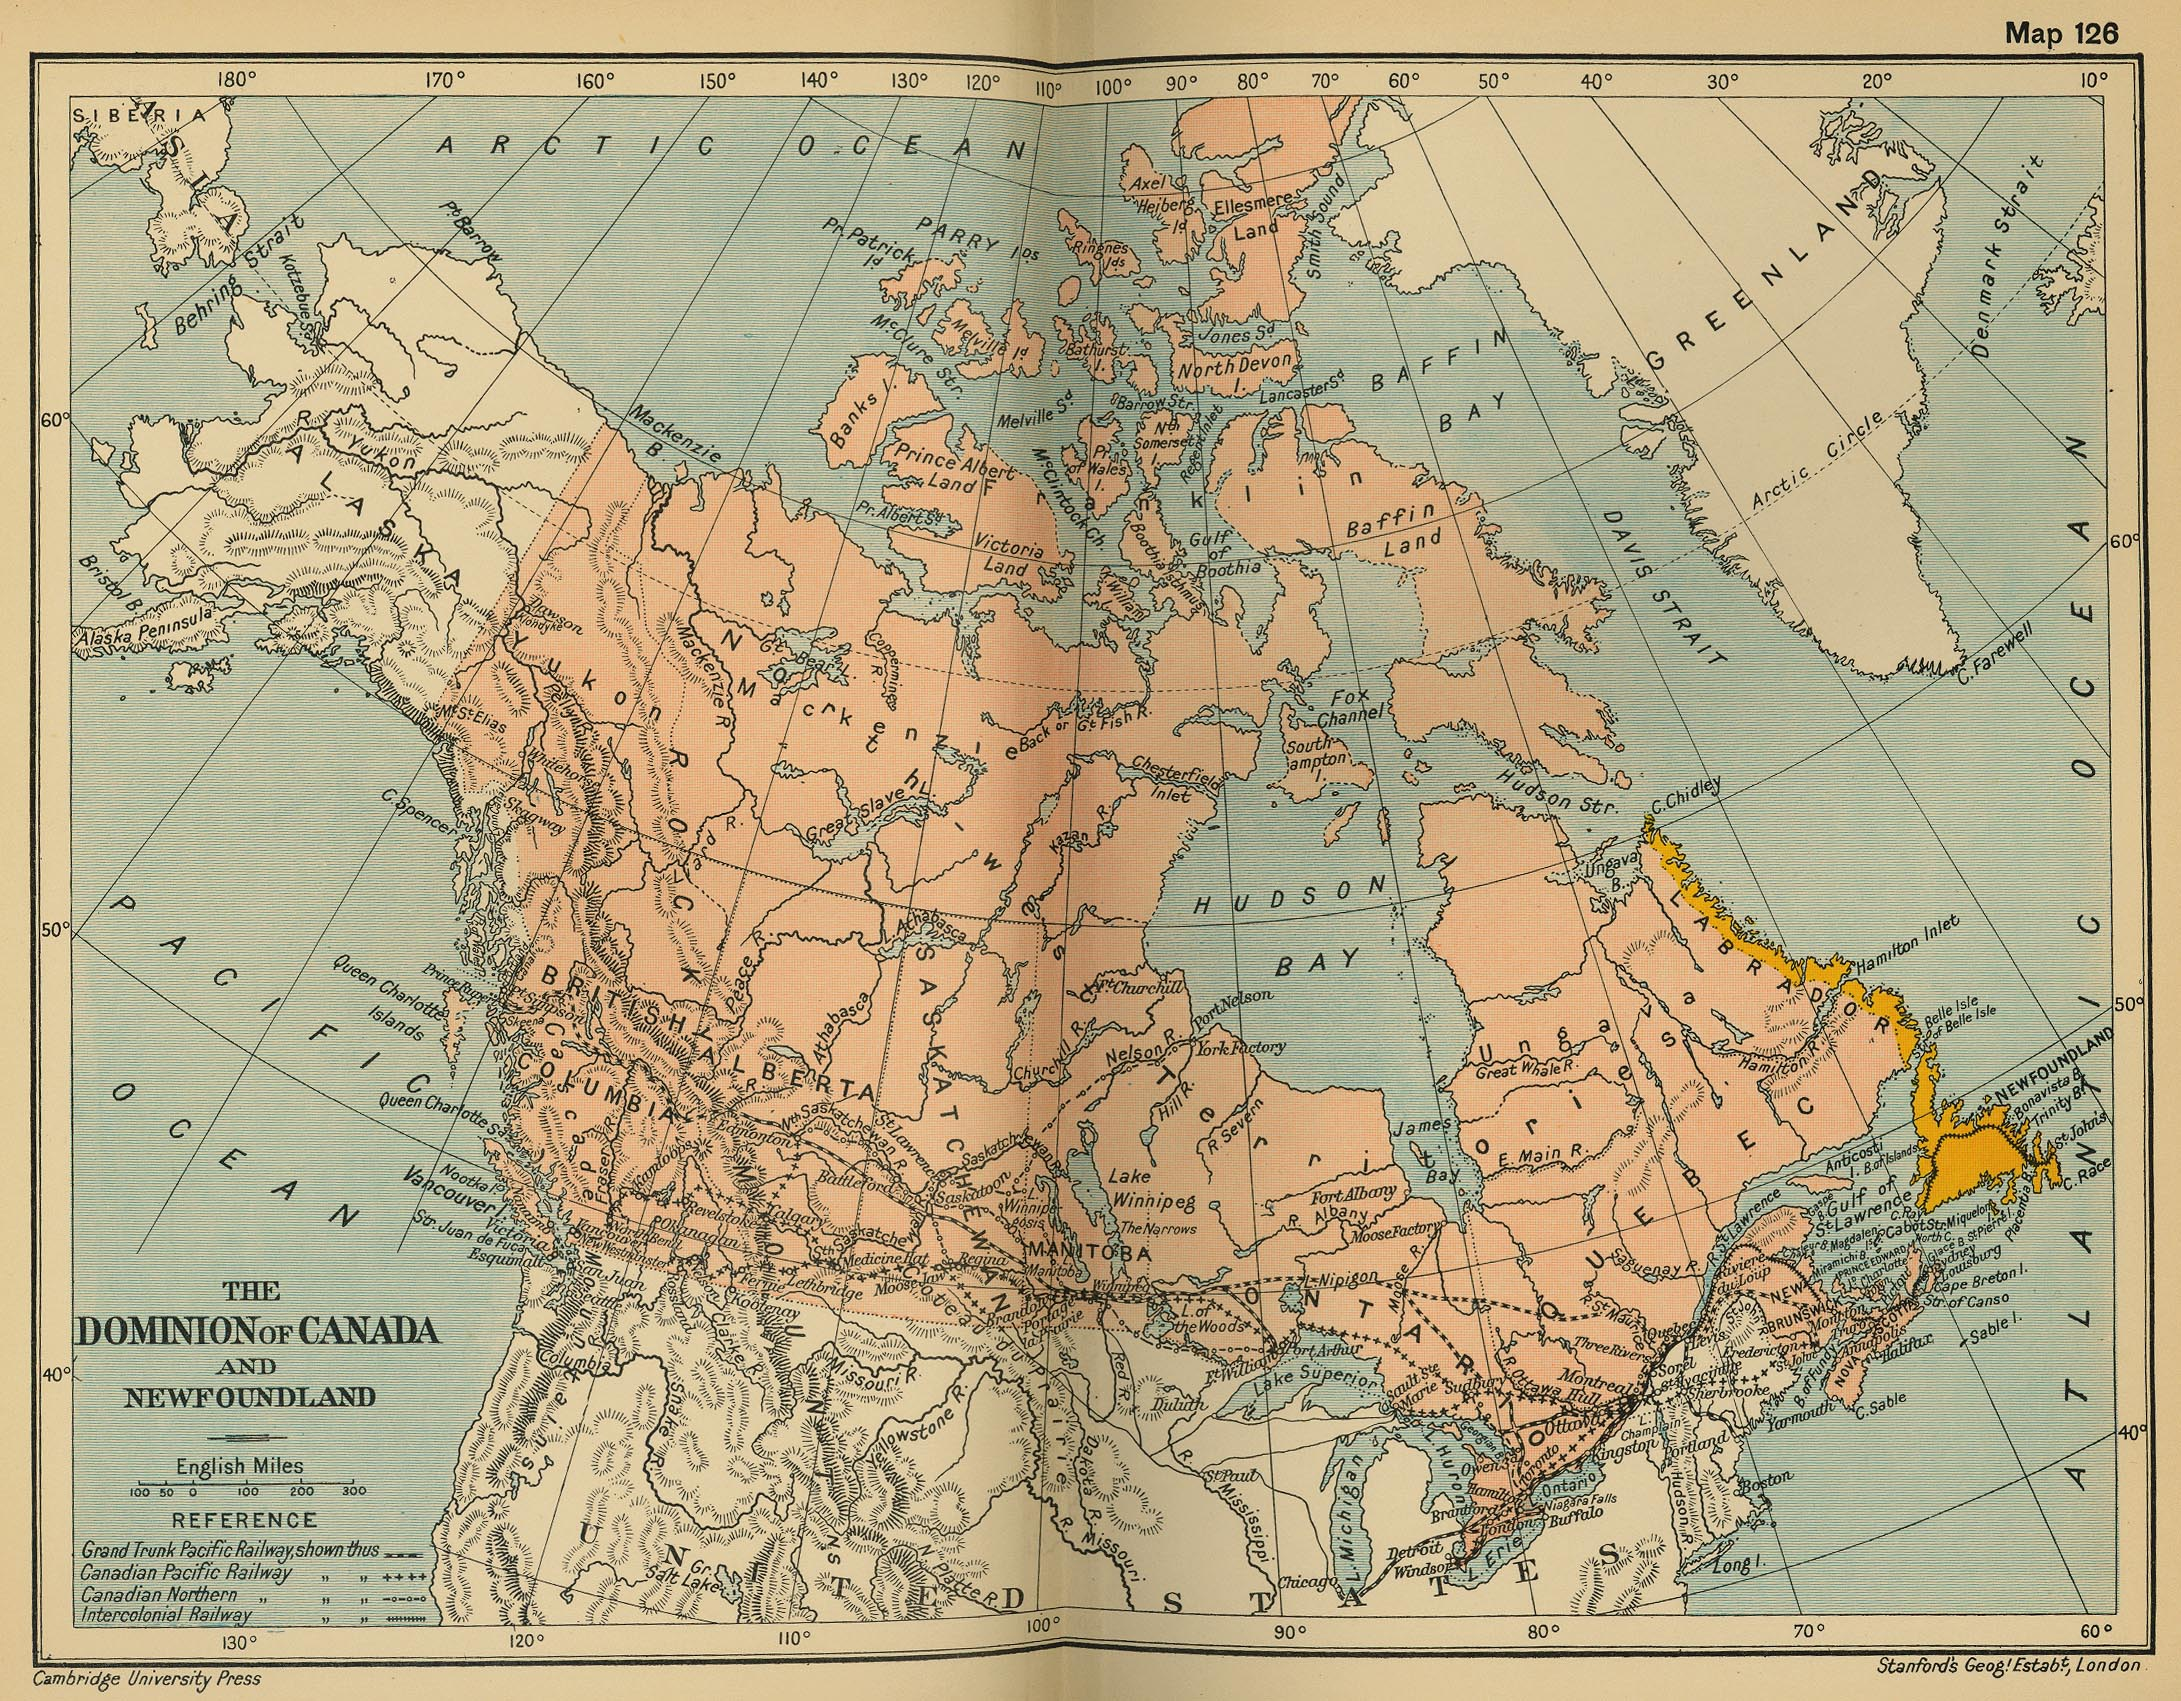 More Historical Maps of Canada